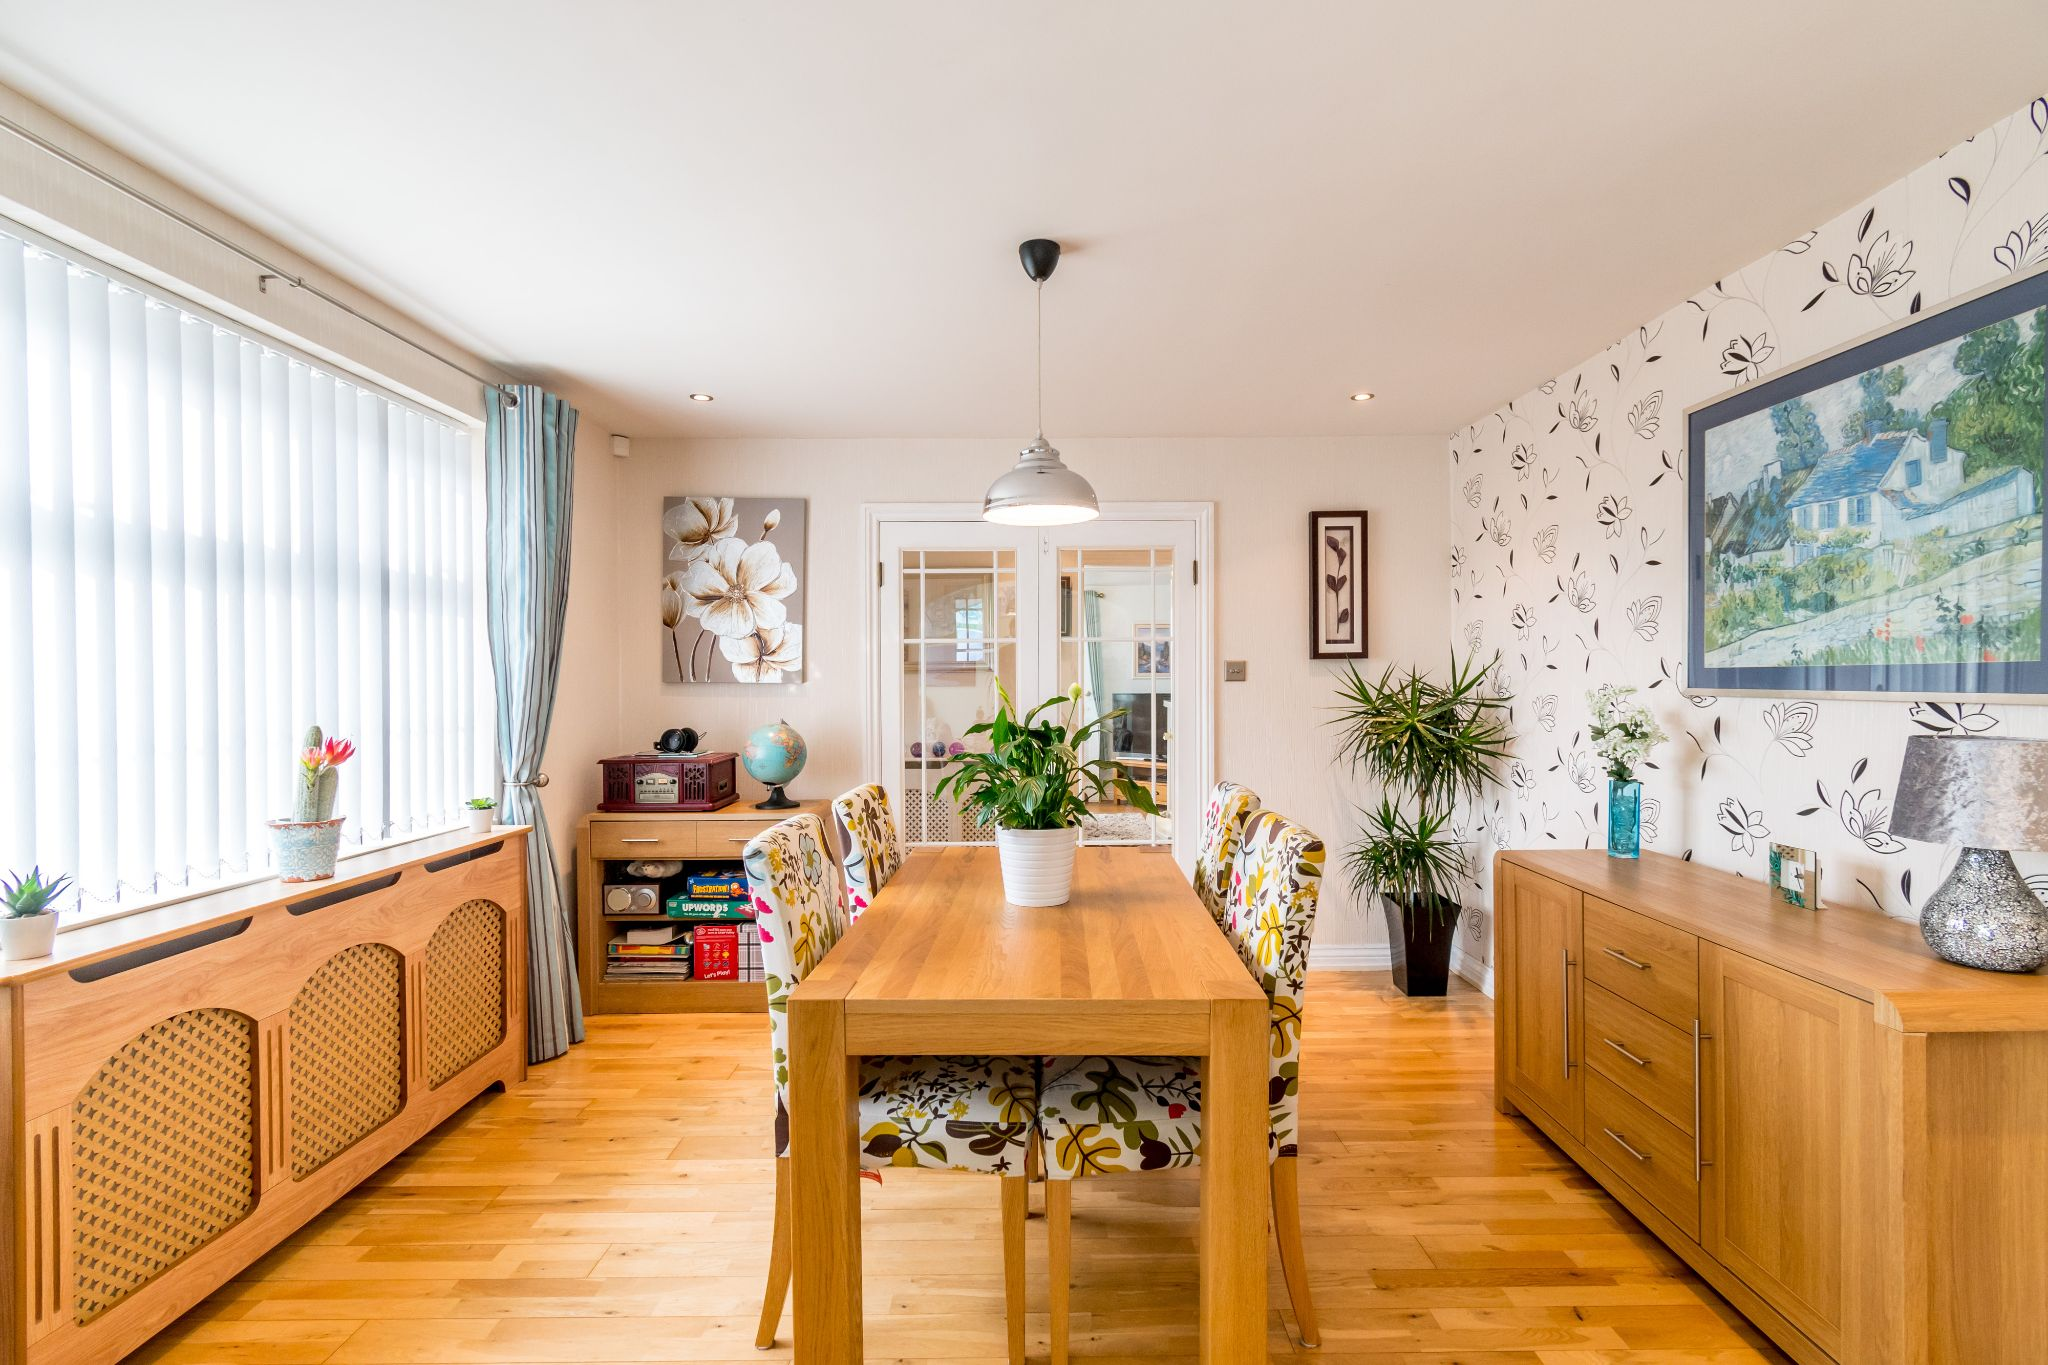 3 bedroom detached bungalow For Sale in Hove Edge - Dining room from the sun room